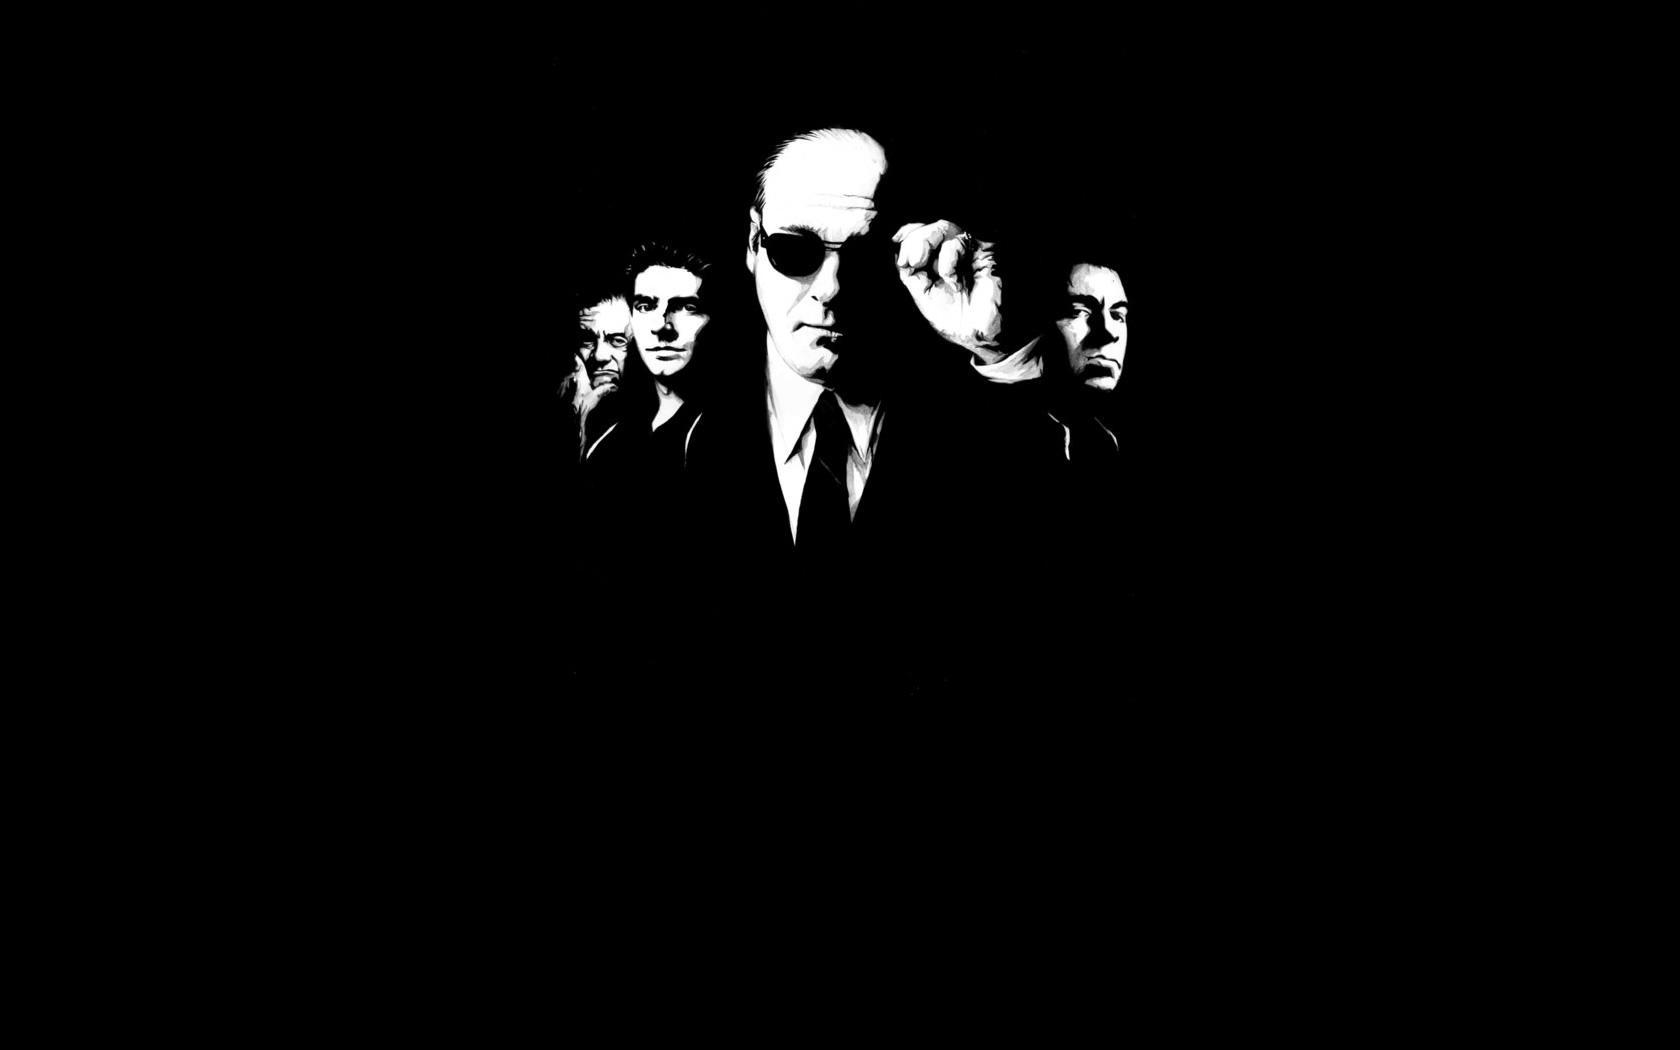 Mafia Wallpaper For Android Other Hd Wallpaper